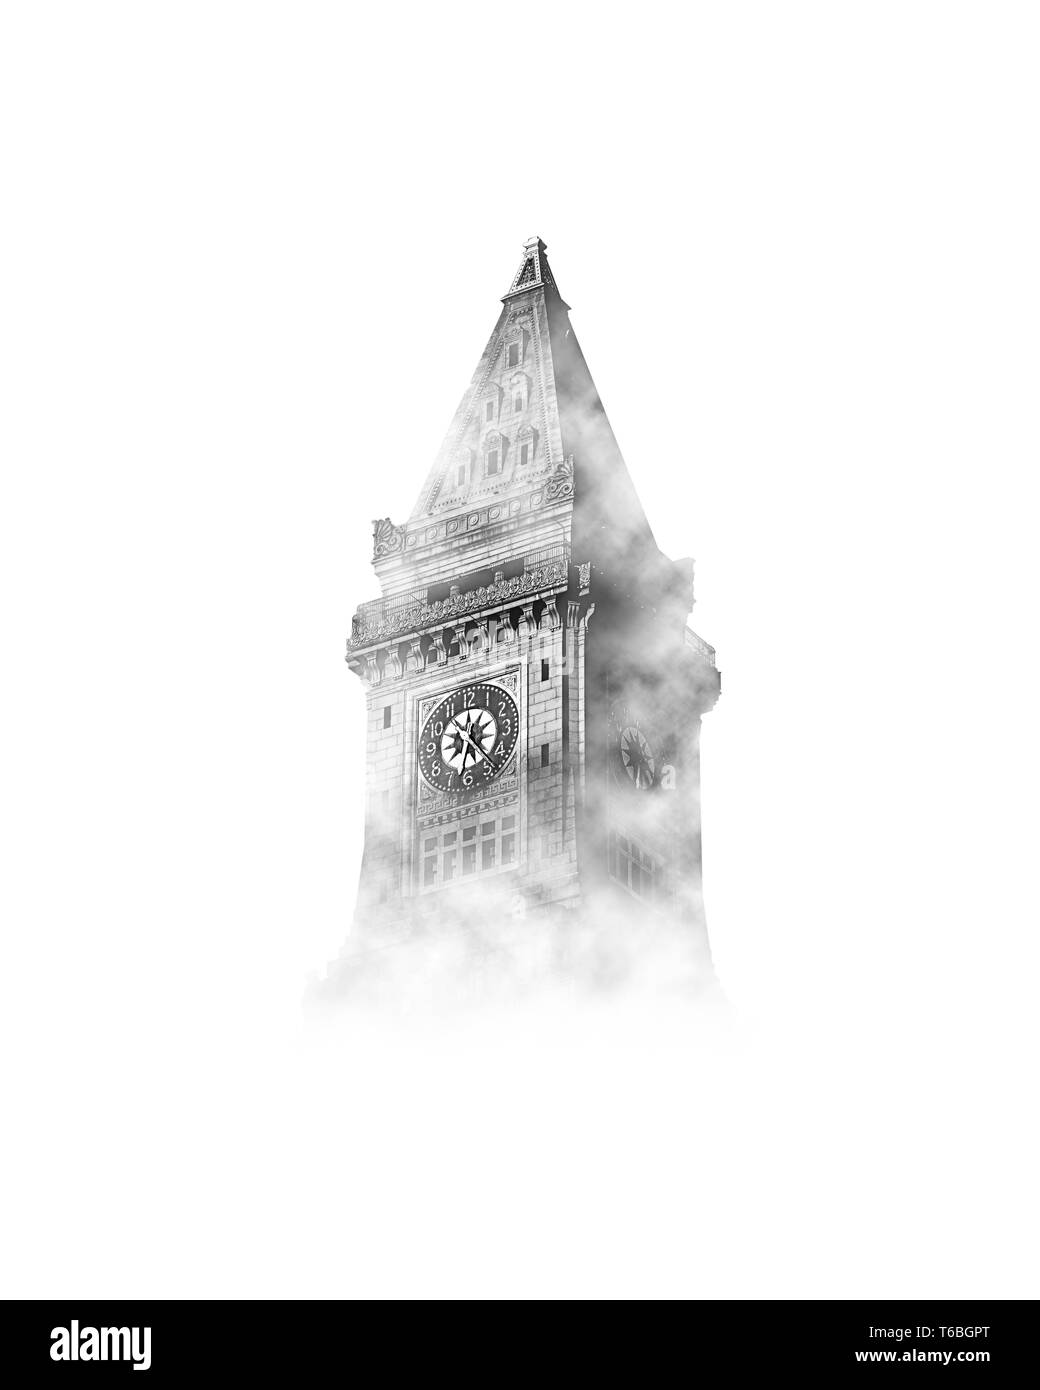 Big Ben in the sky with clouds in black and white - Stock Image